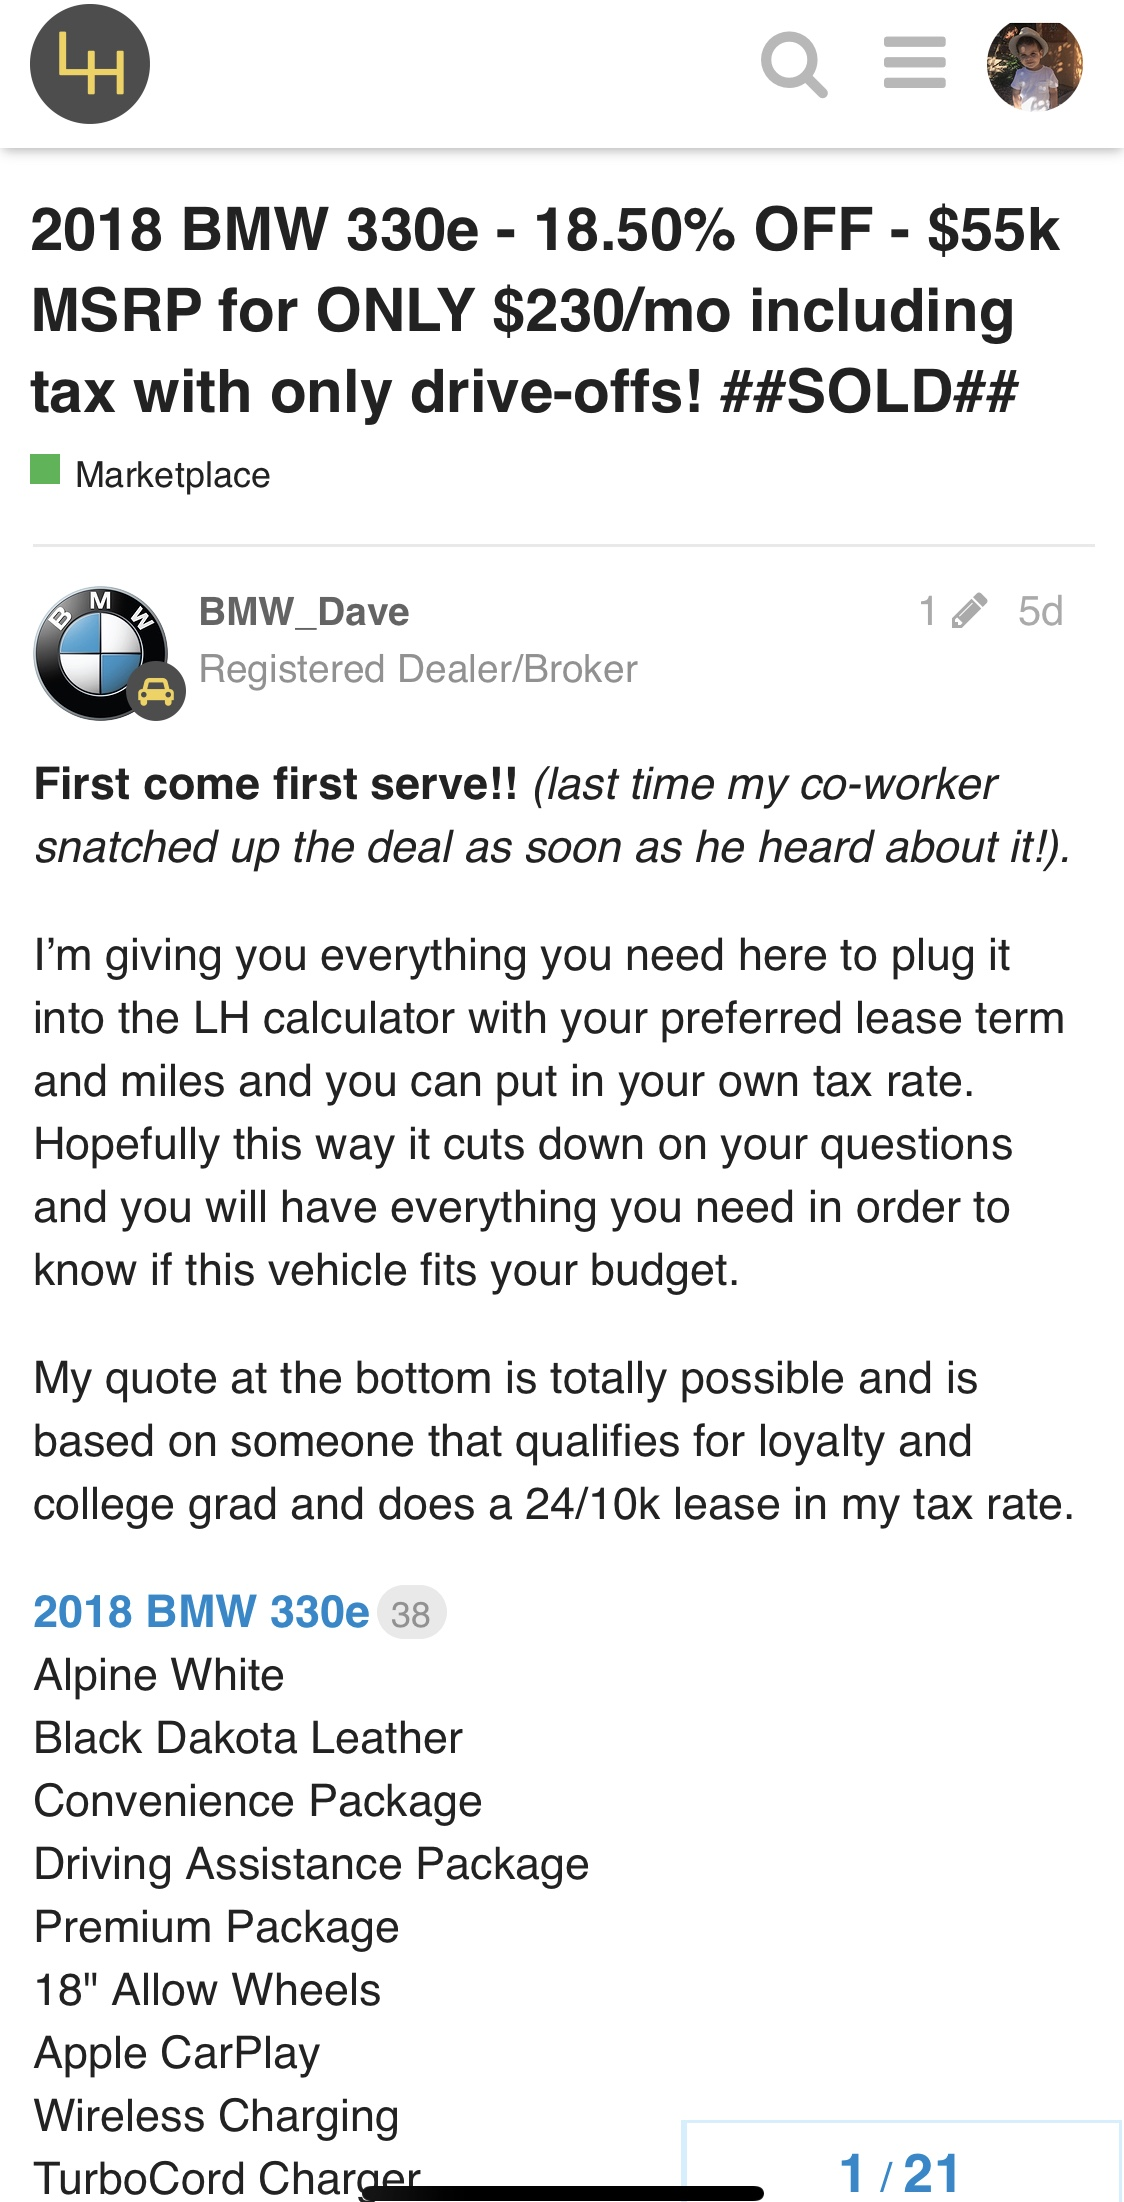 2017 BMW 330e performance - Marketplace - Leasehackr Forum